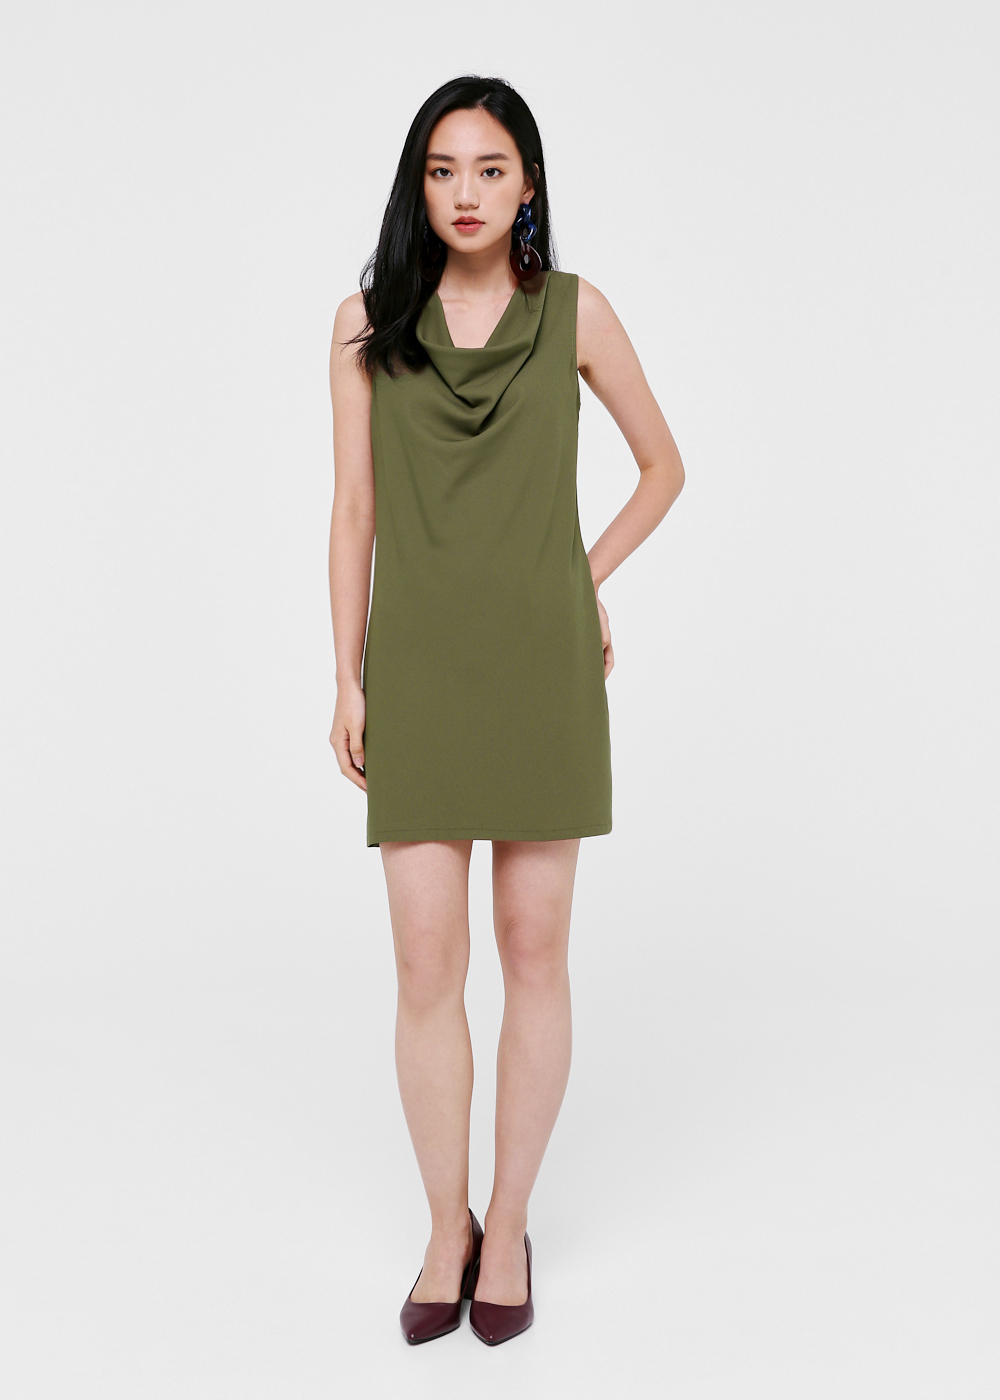 Carissa Cowl Neck Shift Dress